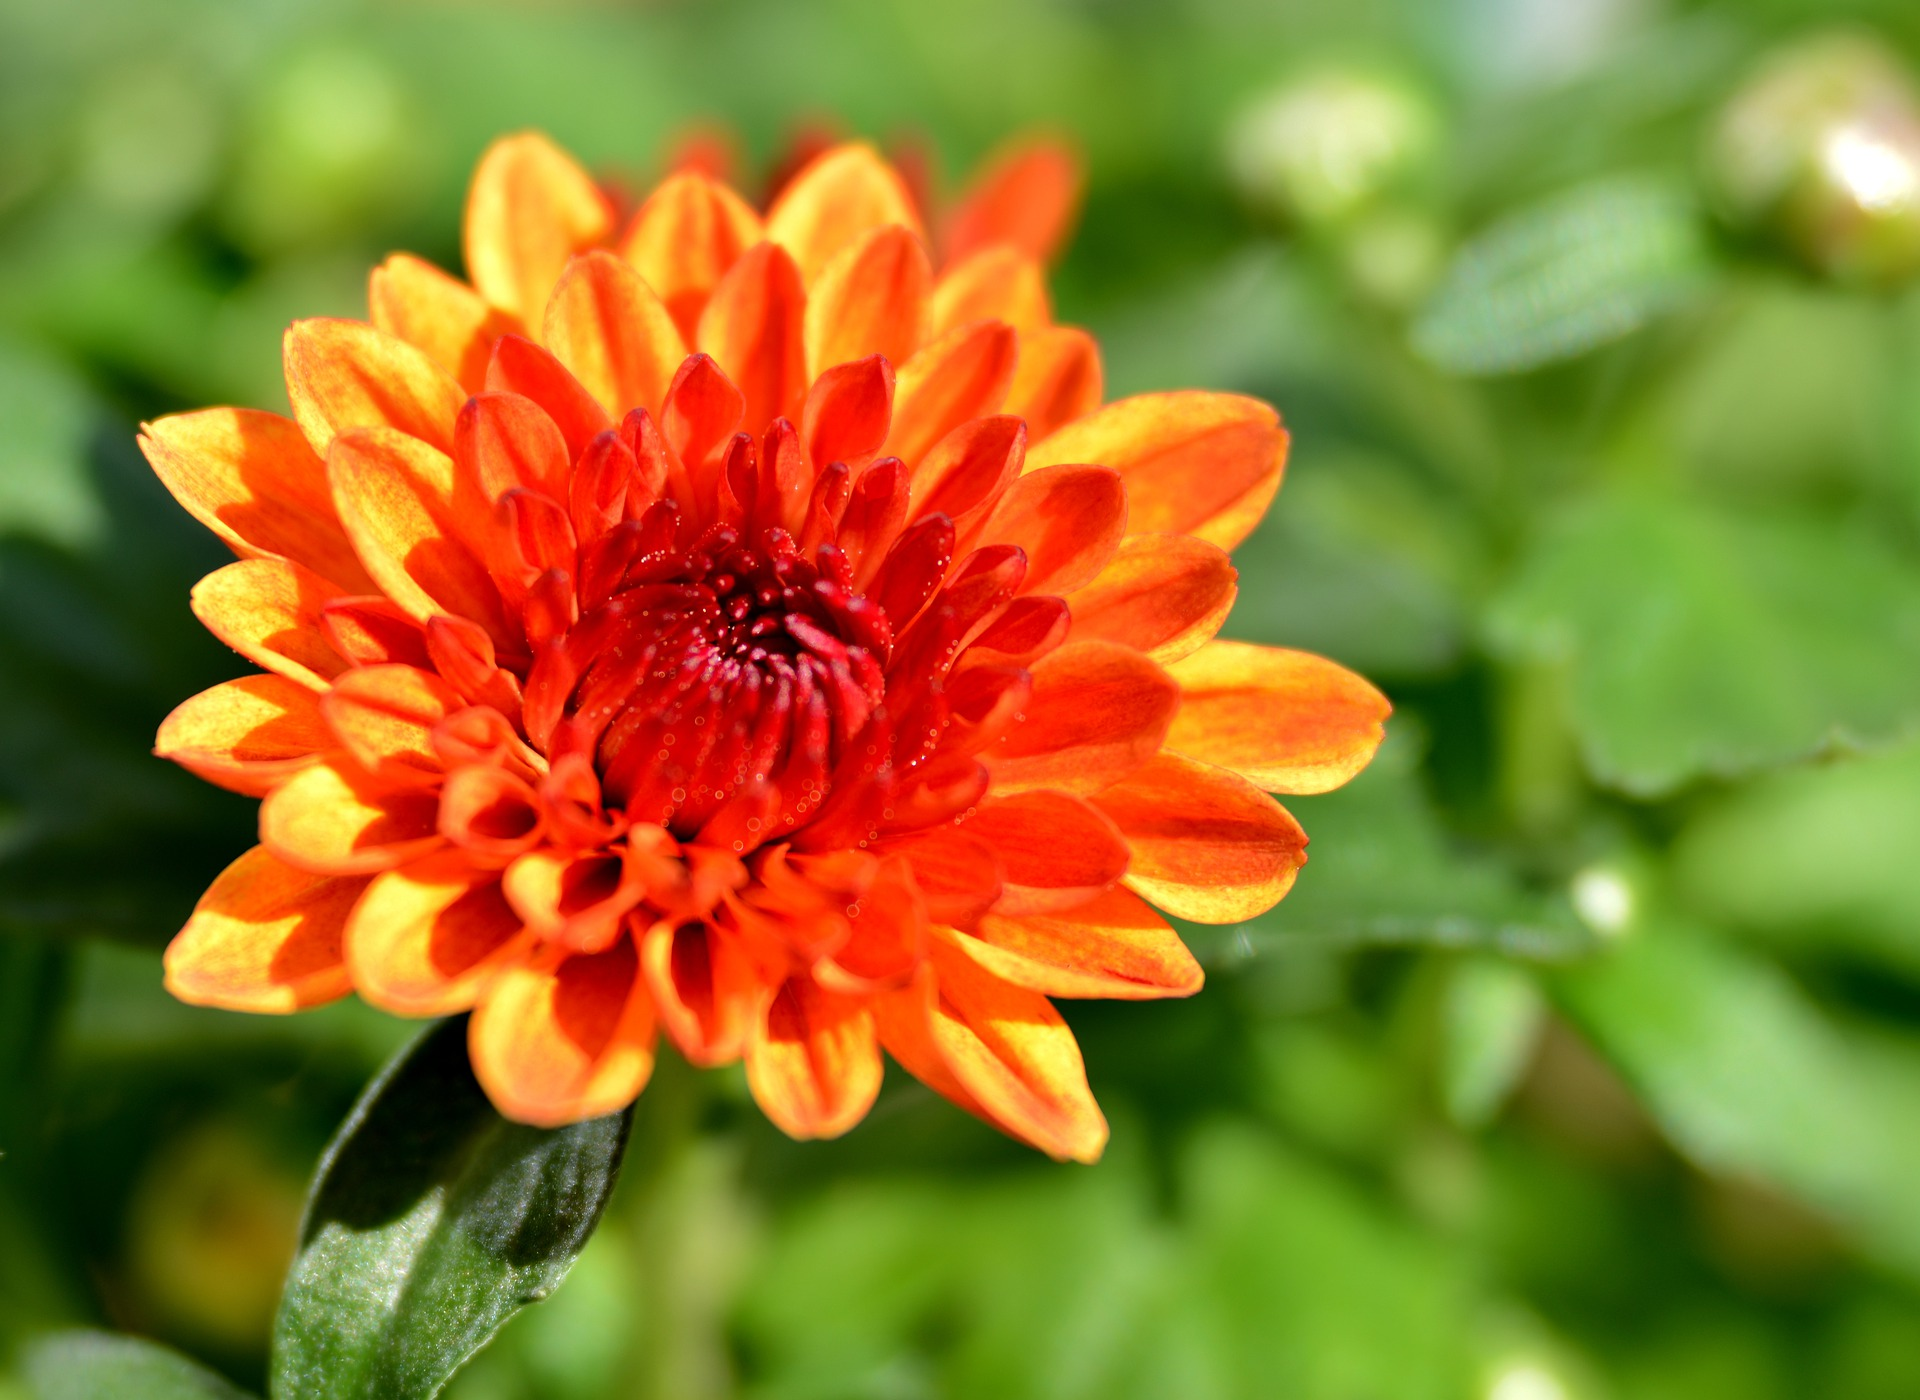 Chrysanthemums: How to Plant and Grow Mums | The Old Farmer's Almanac